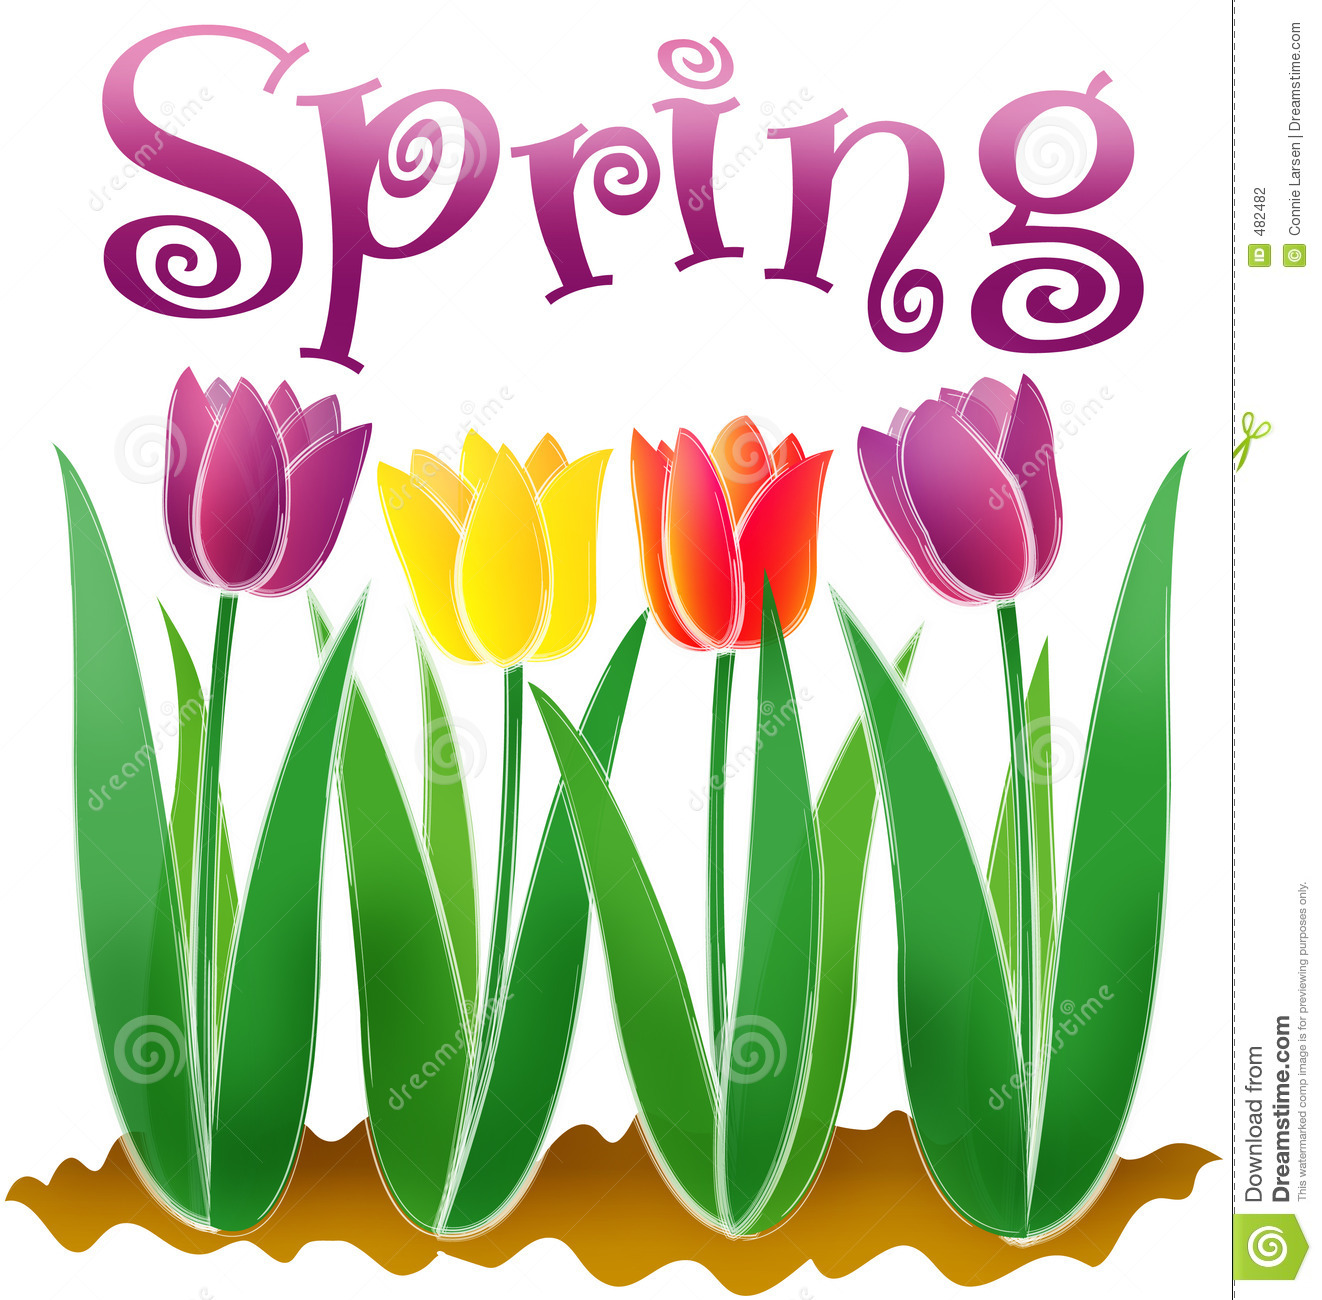 Free clip art of spring pictures